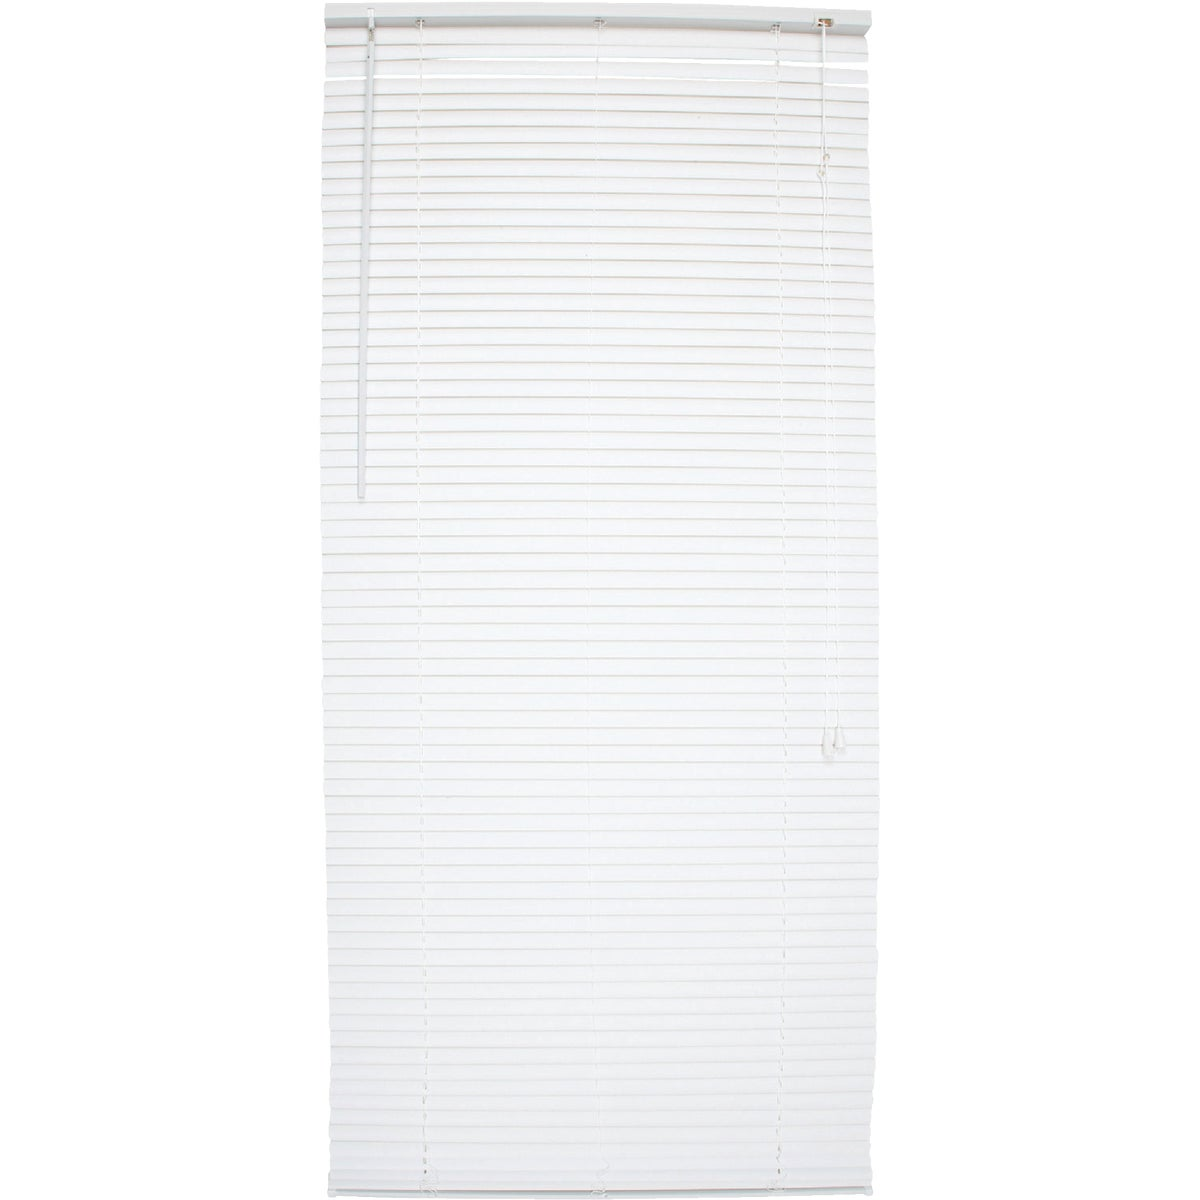 45X64 WHITE MINI BLIND - 615773 by Lotus Wind Incom